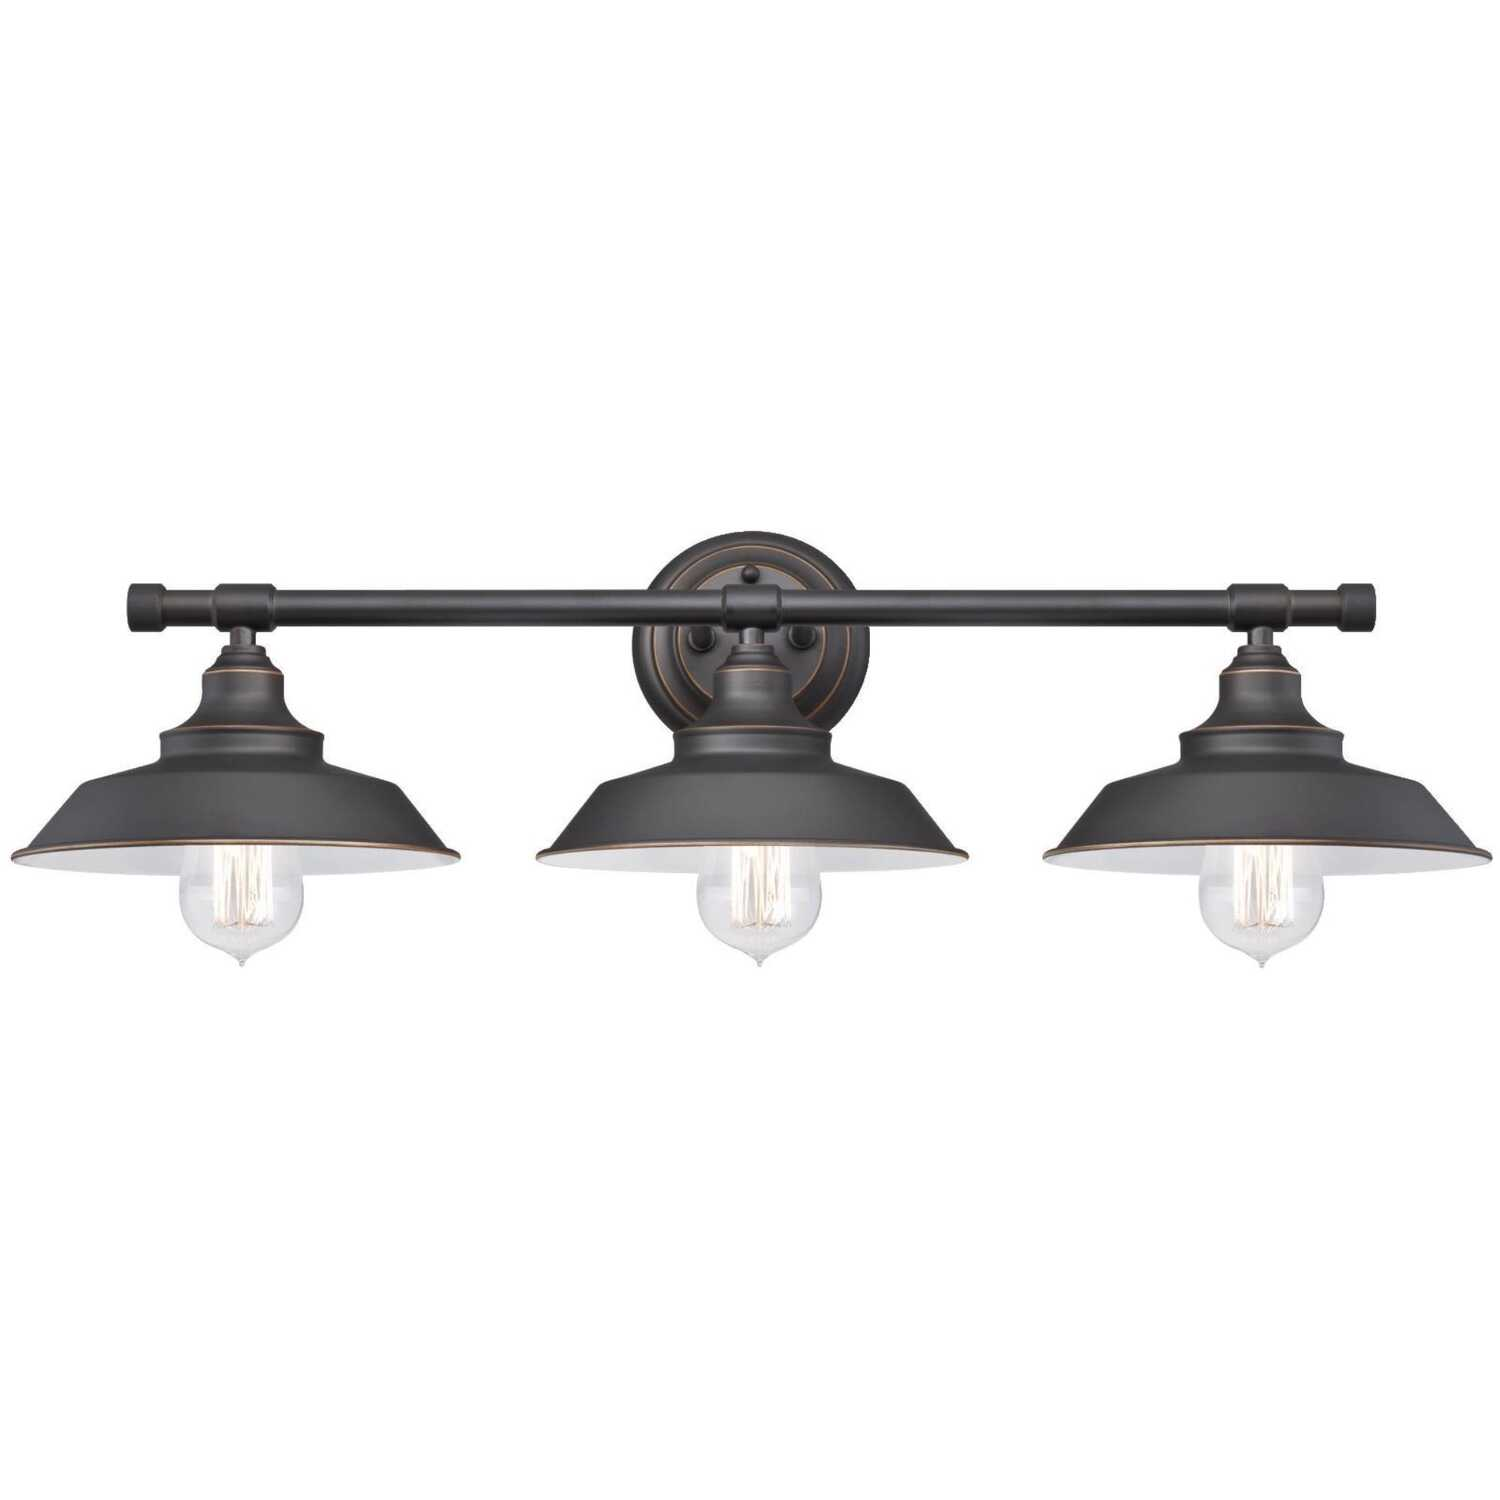 Westinghouse  Oil Rubbed Bronze  3 lights Wall Sconce